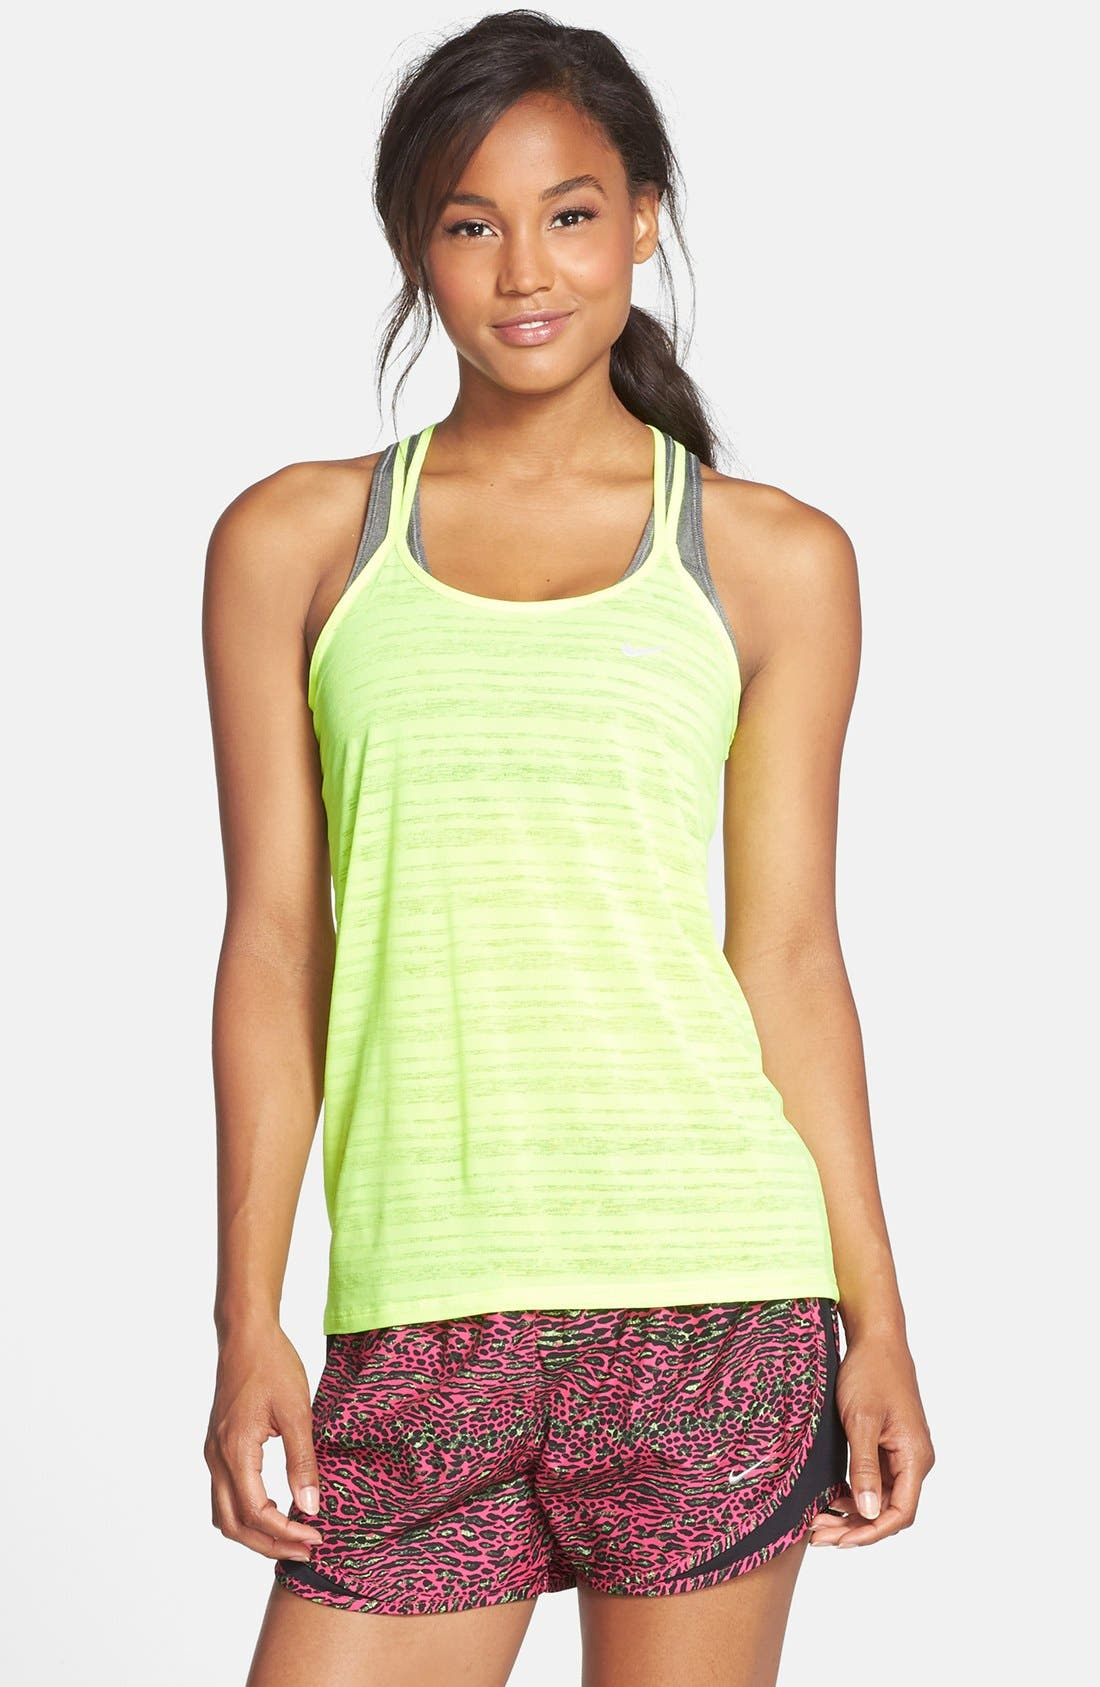 Alternate Image 1 Selected - Nike 'Cool Breeze' Dri-FIT Strappy Running Tank